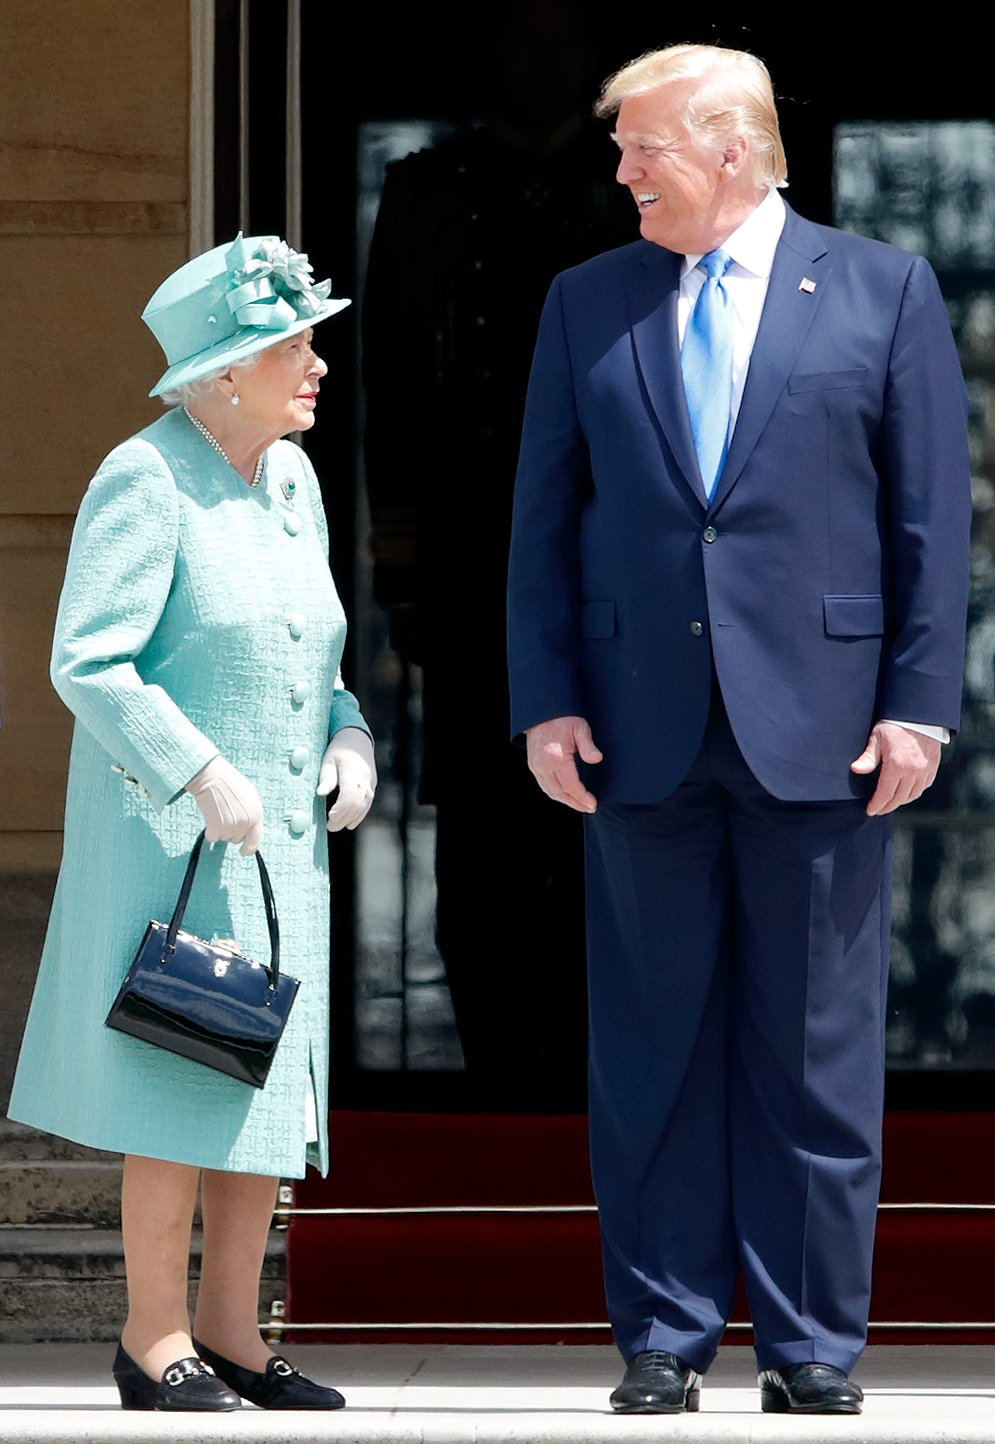 Queen Elizabeth II and US President Donald Trump during his state visit to the UK on June 3, 2019, in London, England. | Source: Getty Images.